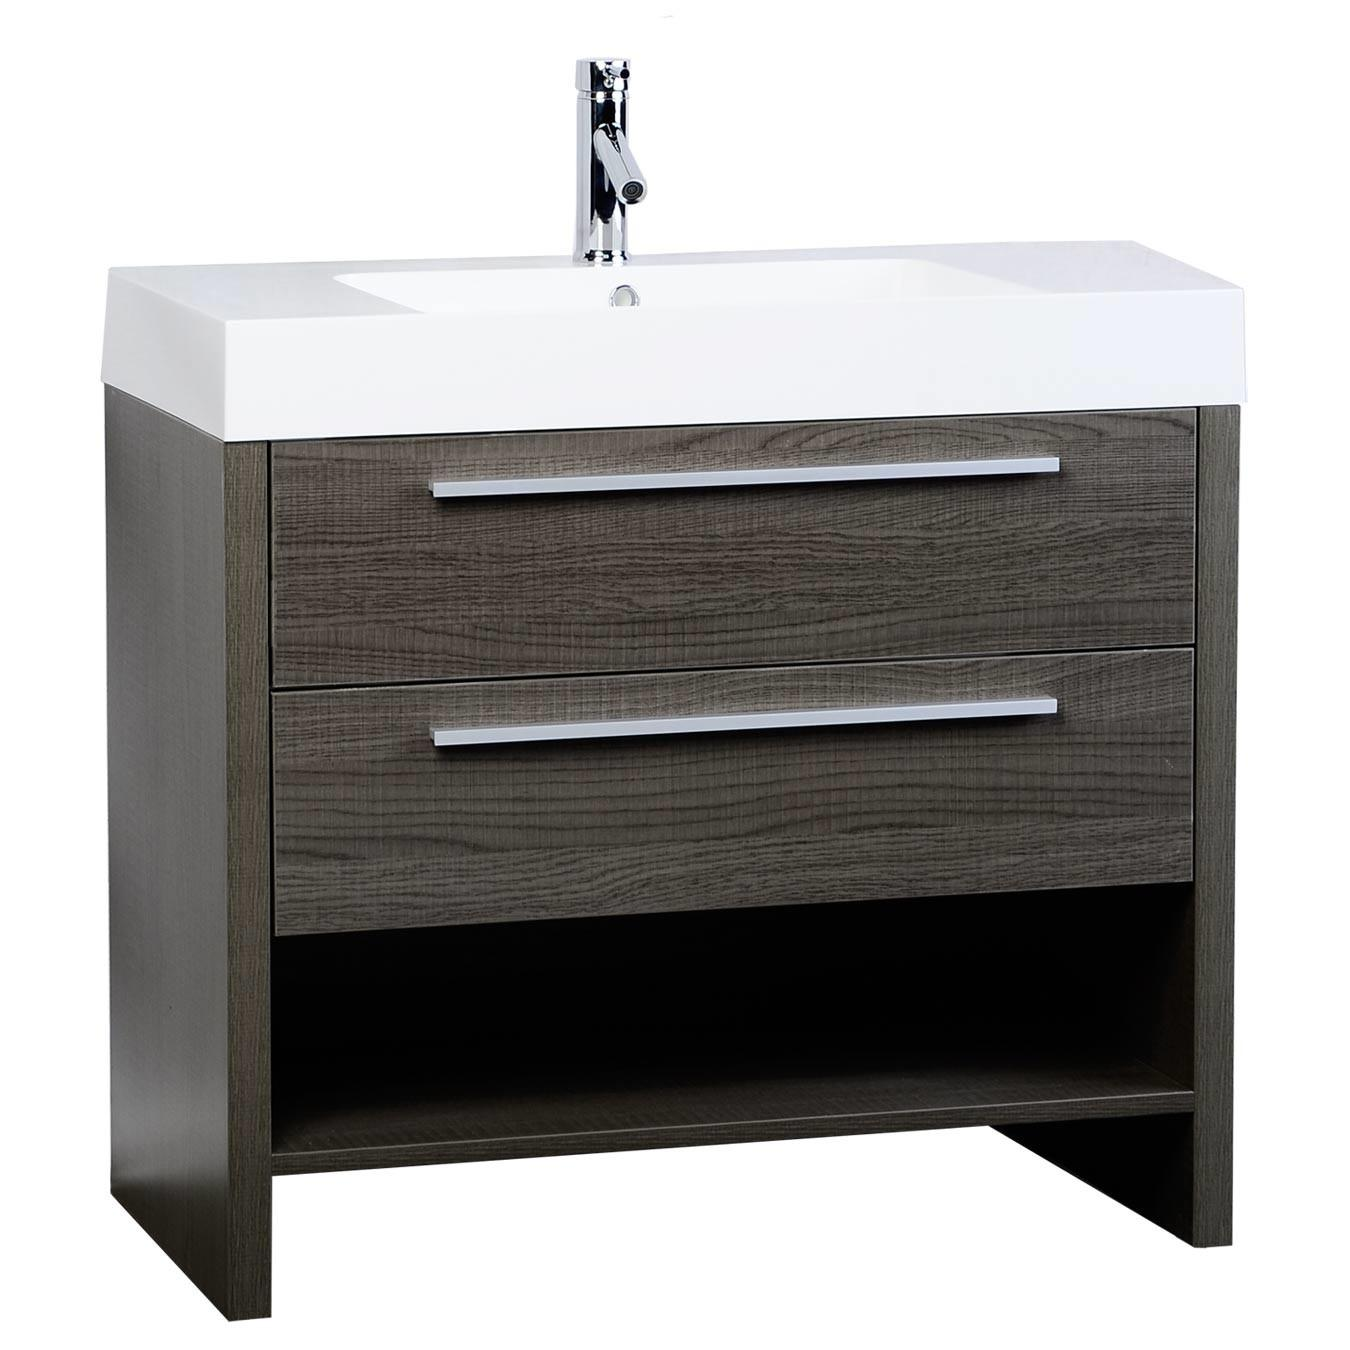 Mula Modern Bathroom Vanity Oak L900